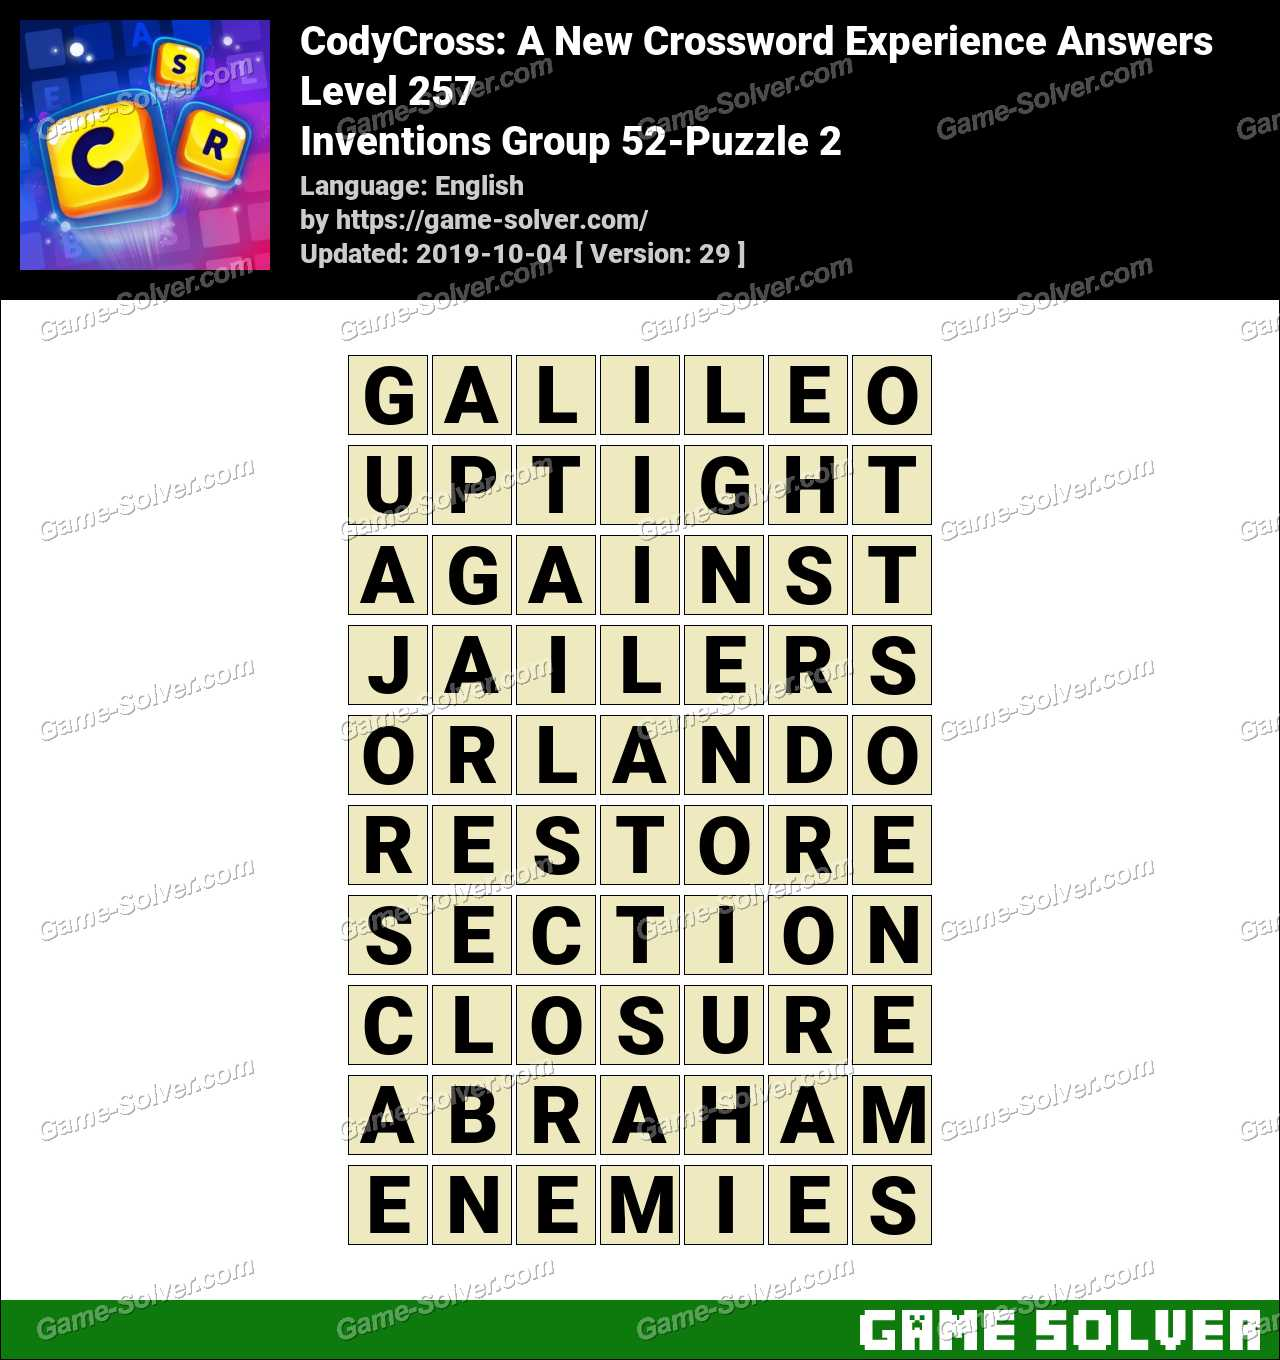 CodyCross Inventions Group 52-Puzzle 2 Answers